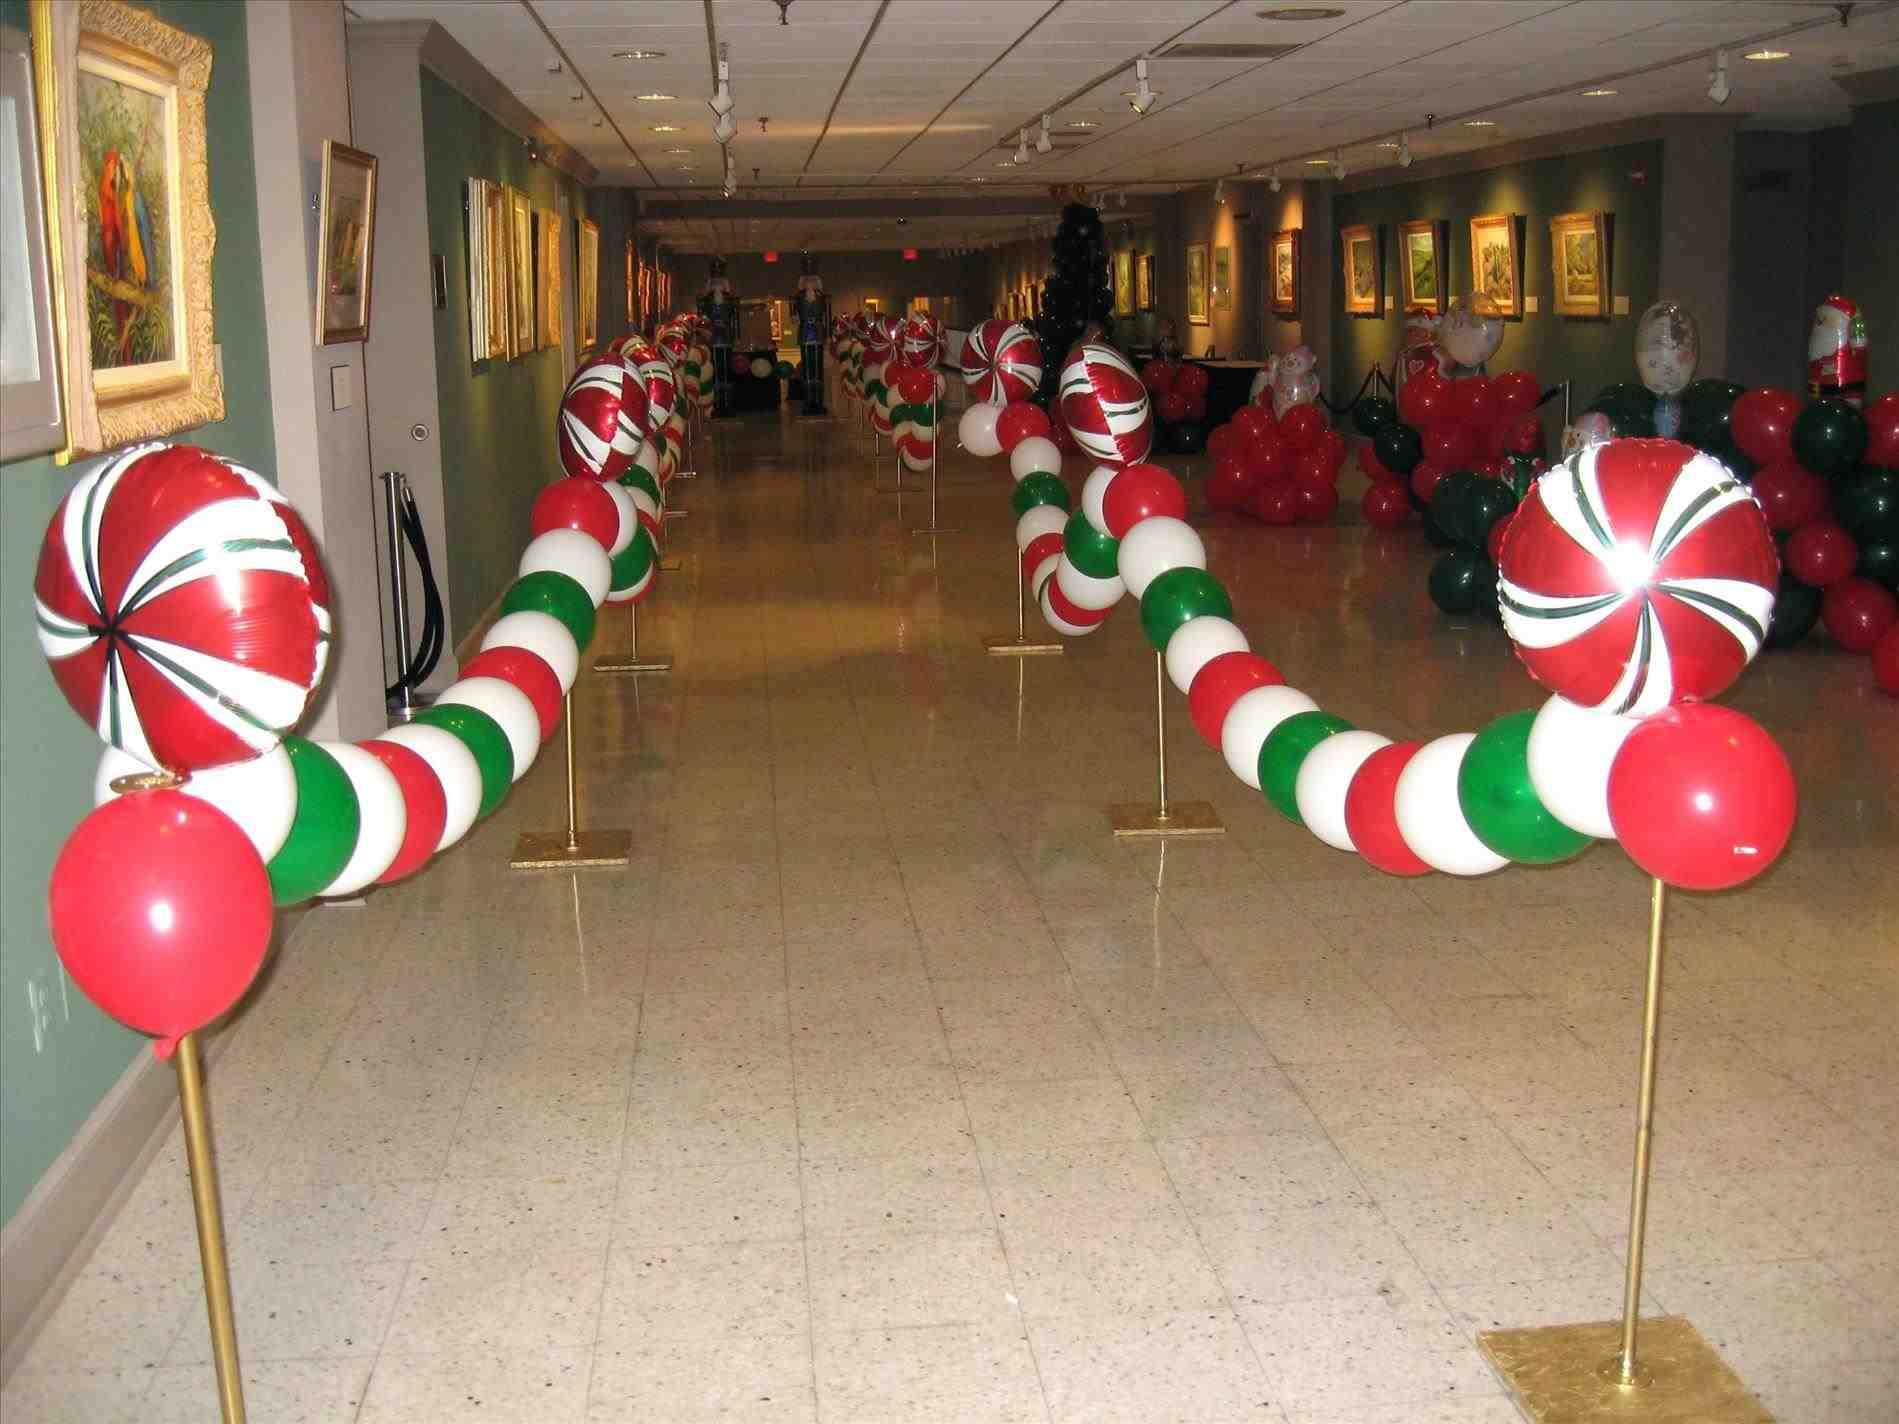 Charming Ideas For Christmas Office Party Part - 7: Hereu0027s Some Fun Christmas Balloon Garland For An Office Party.